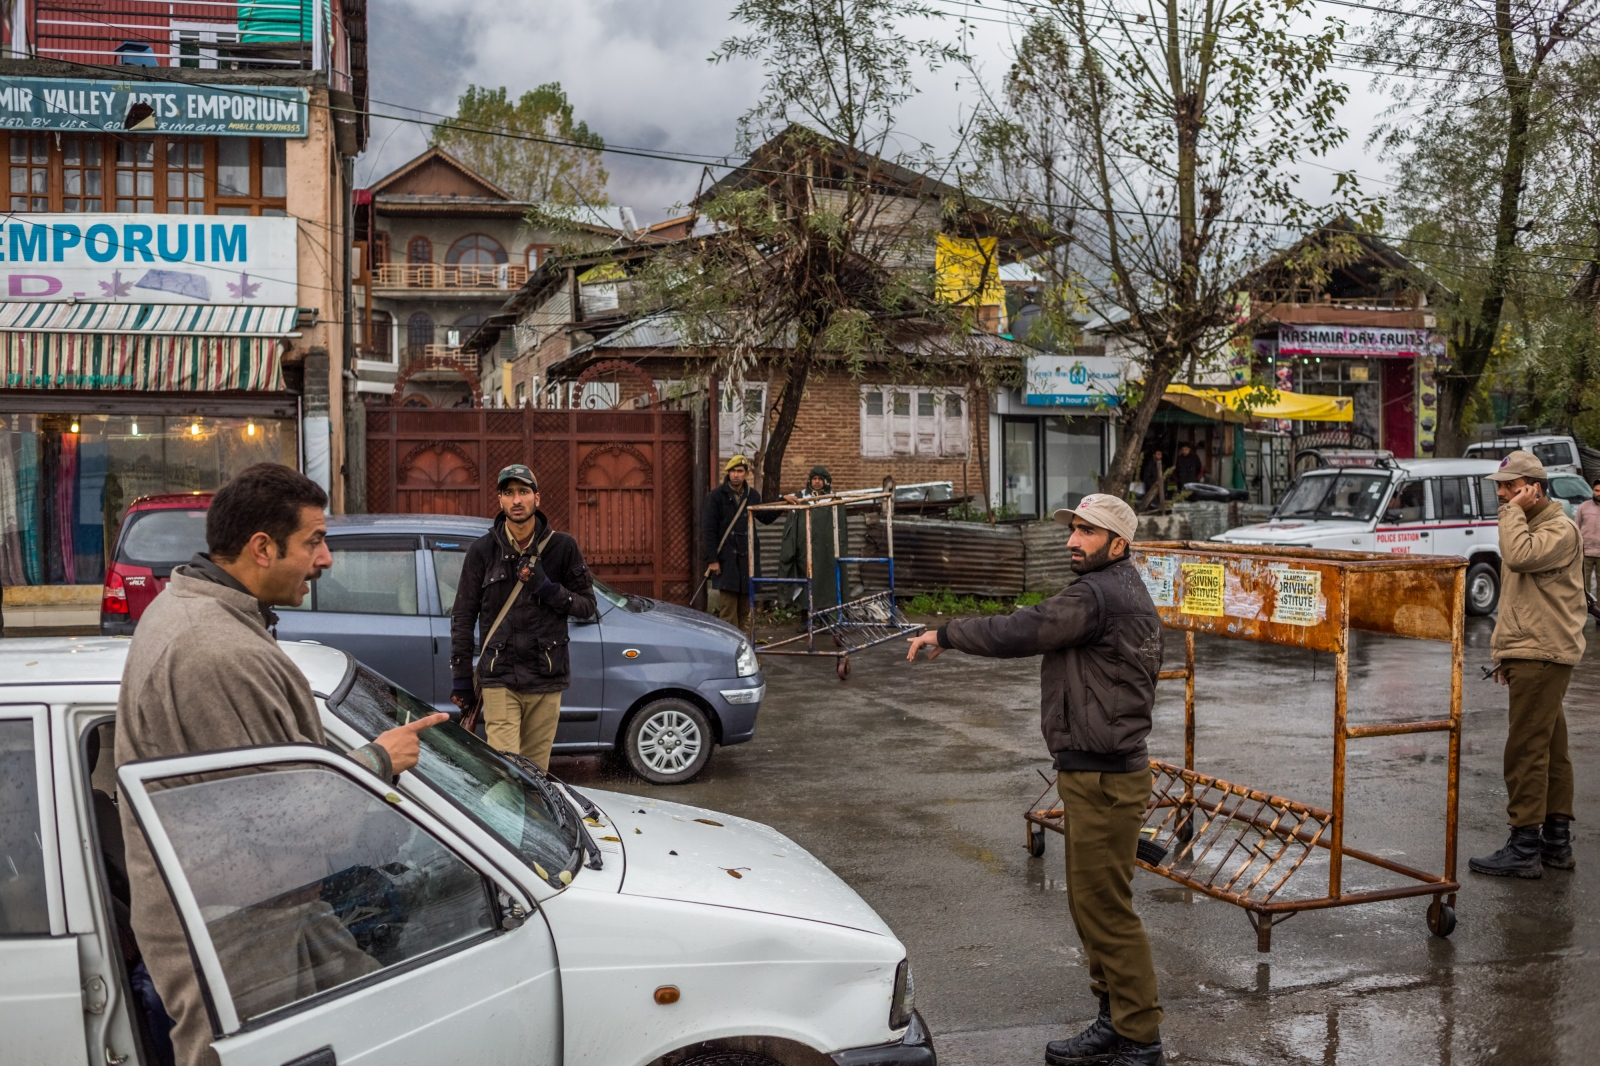 A Kashmiri driver (L) reacts as he is questioned and told by Jammu and Kashmir police personnel that his car will be searched by Indian security personnel at a checkpoint in Srinagar on November 4, 2015.